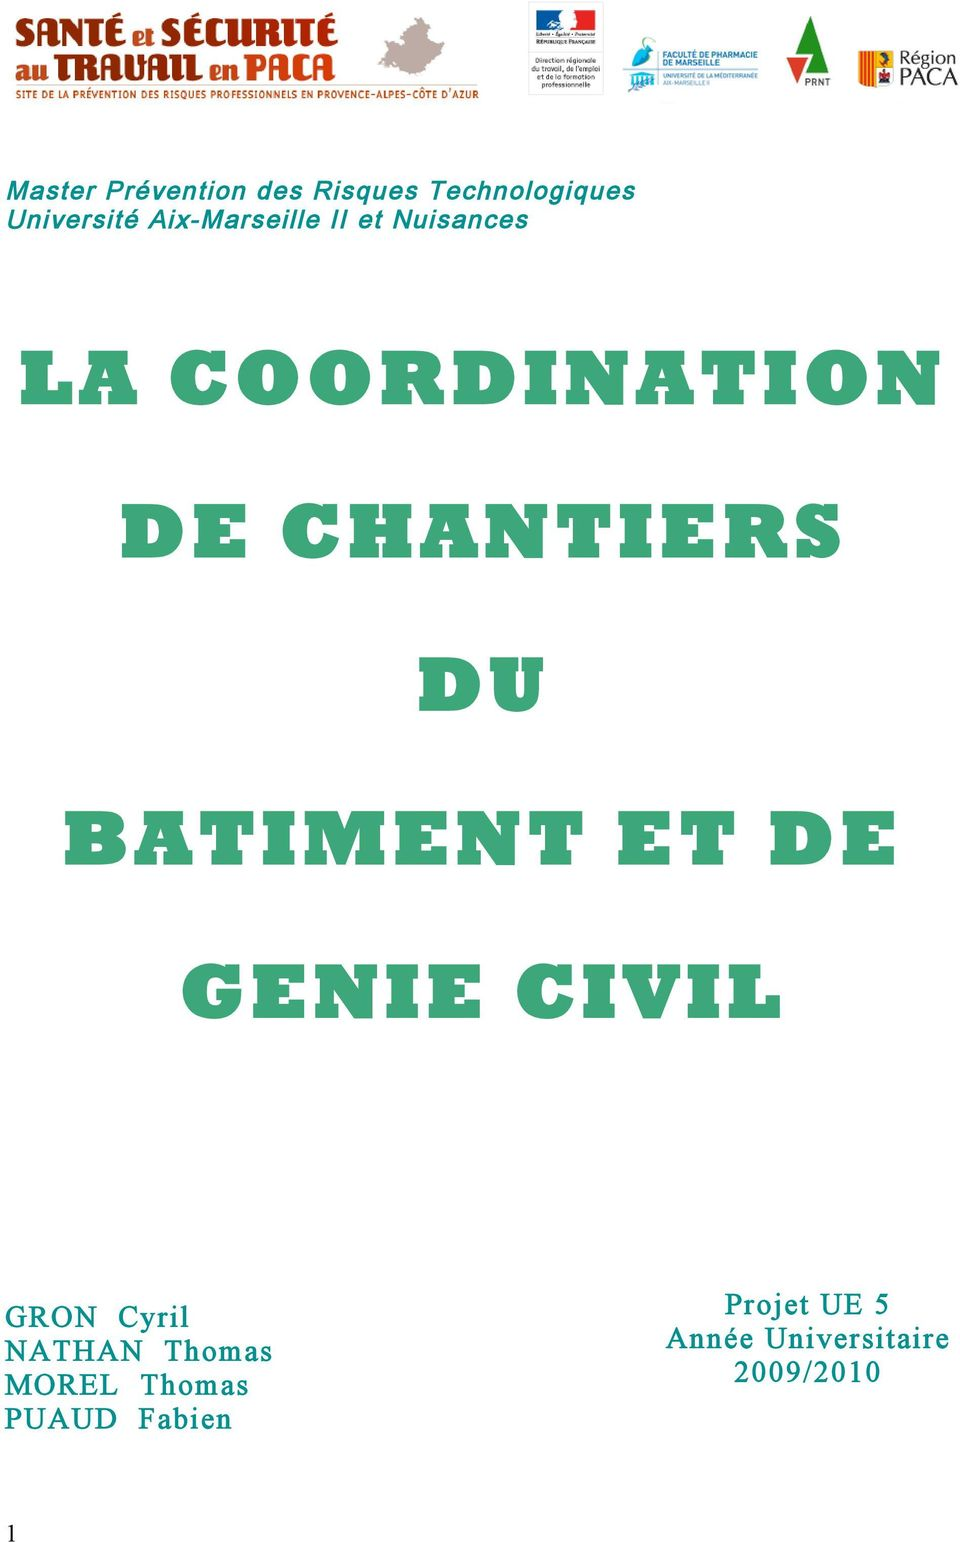 DU BATIMENT ET DE GENIE CIVIL GRON Cyril NATHAN Thomas